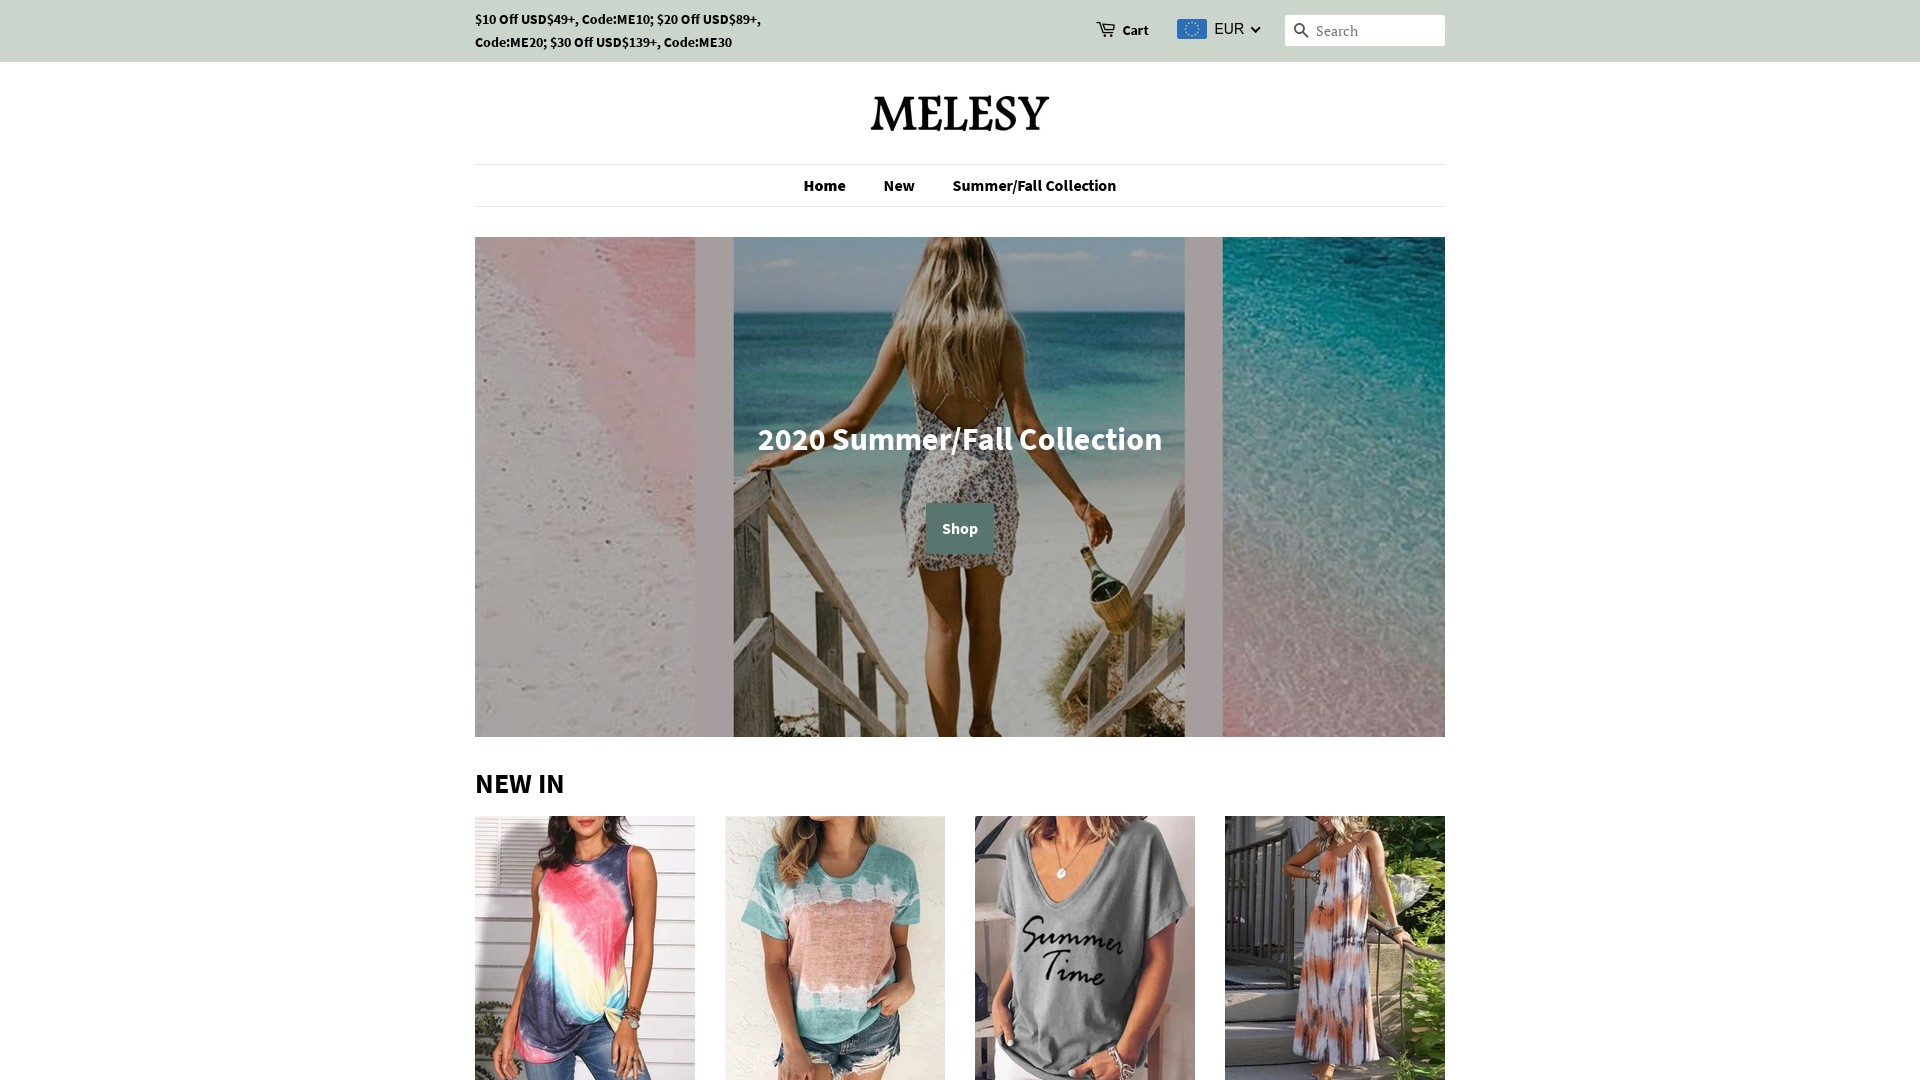 Is Melesy Boutique a Scam? Review of the Online Store?